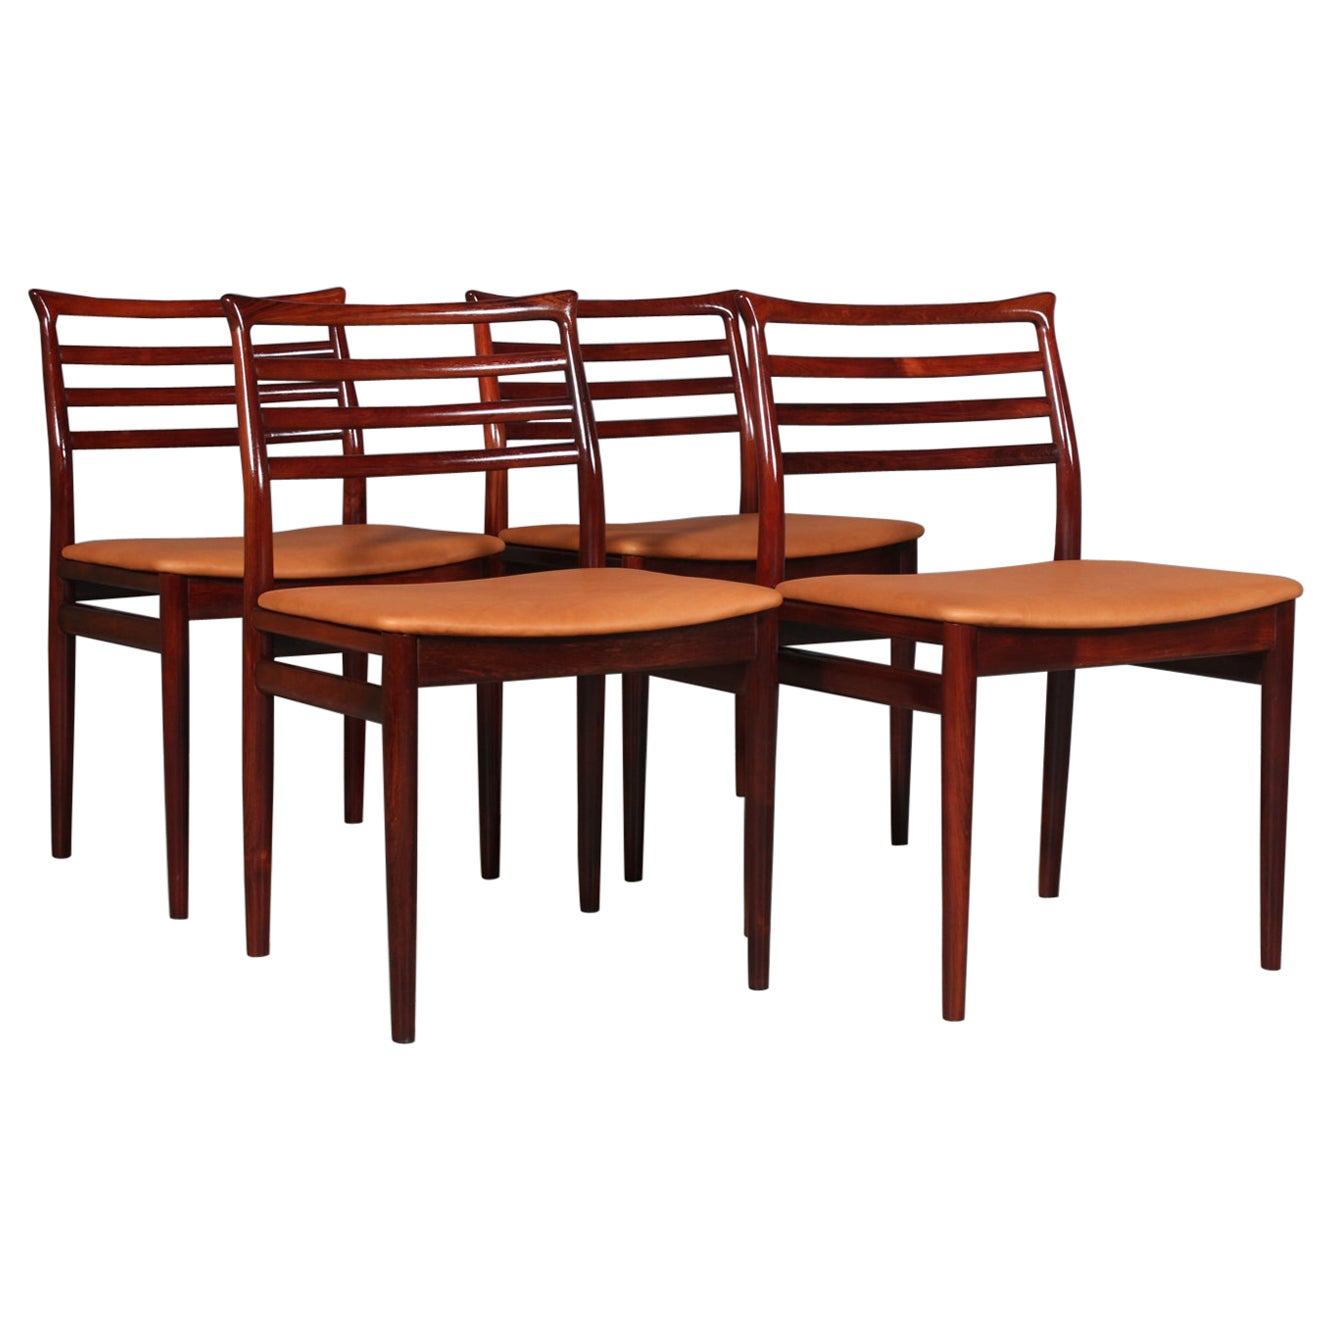 Erling Torvits, Set of Six Dining Chairs